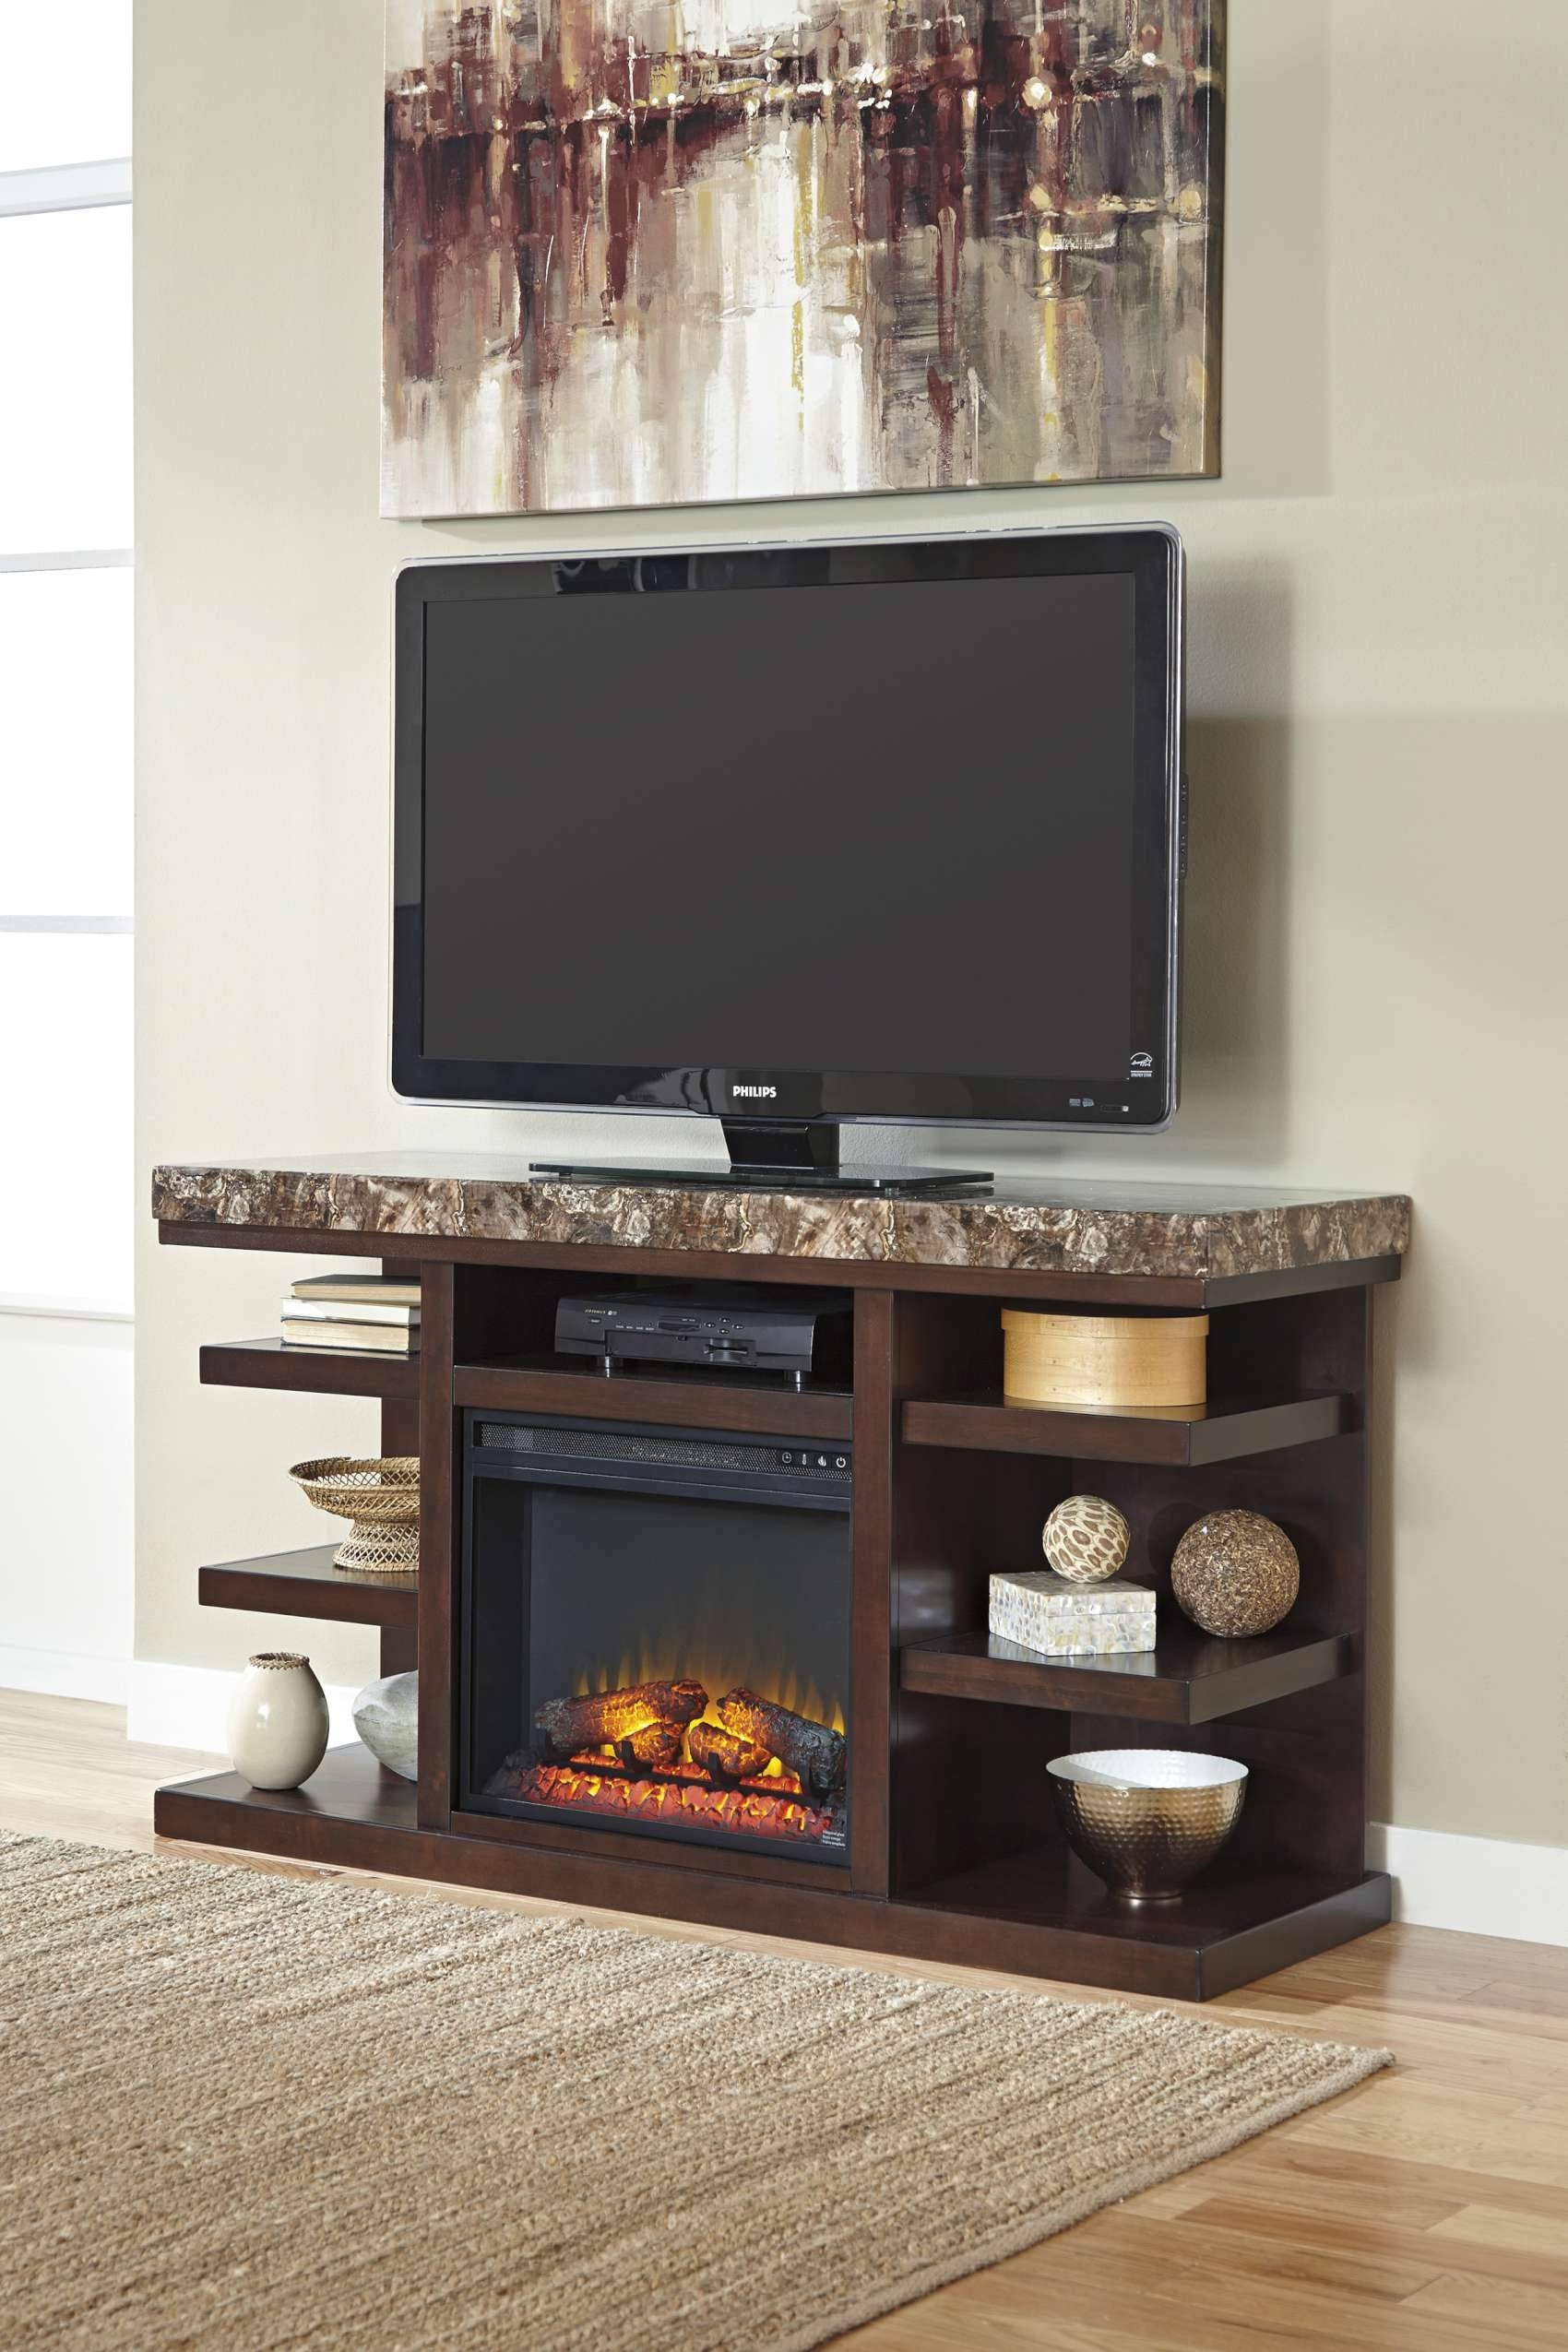 Unique Tv Stands | Cepagolf with regard to Unique Tv Stands (Image 14 of 15)